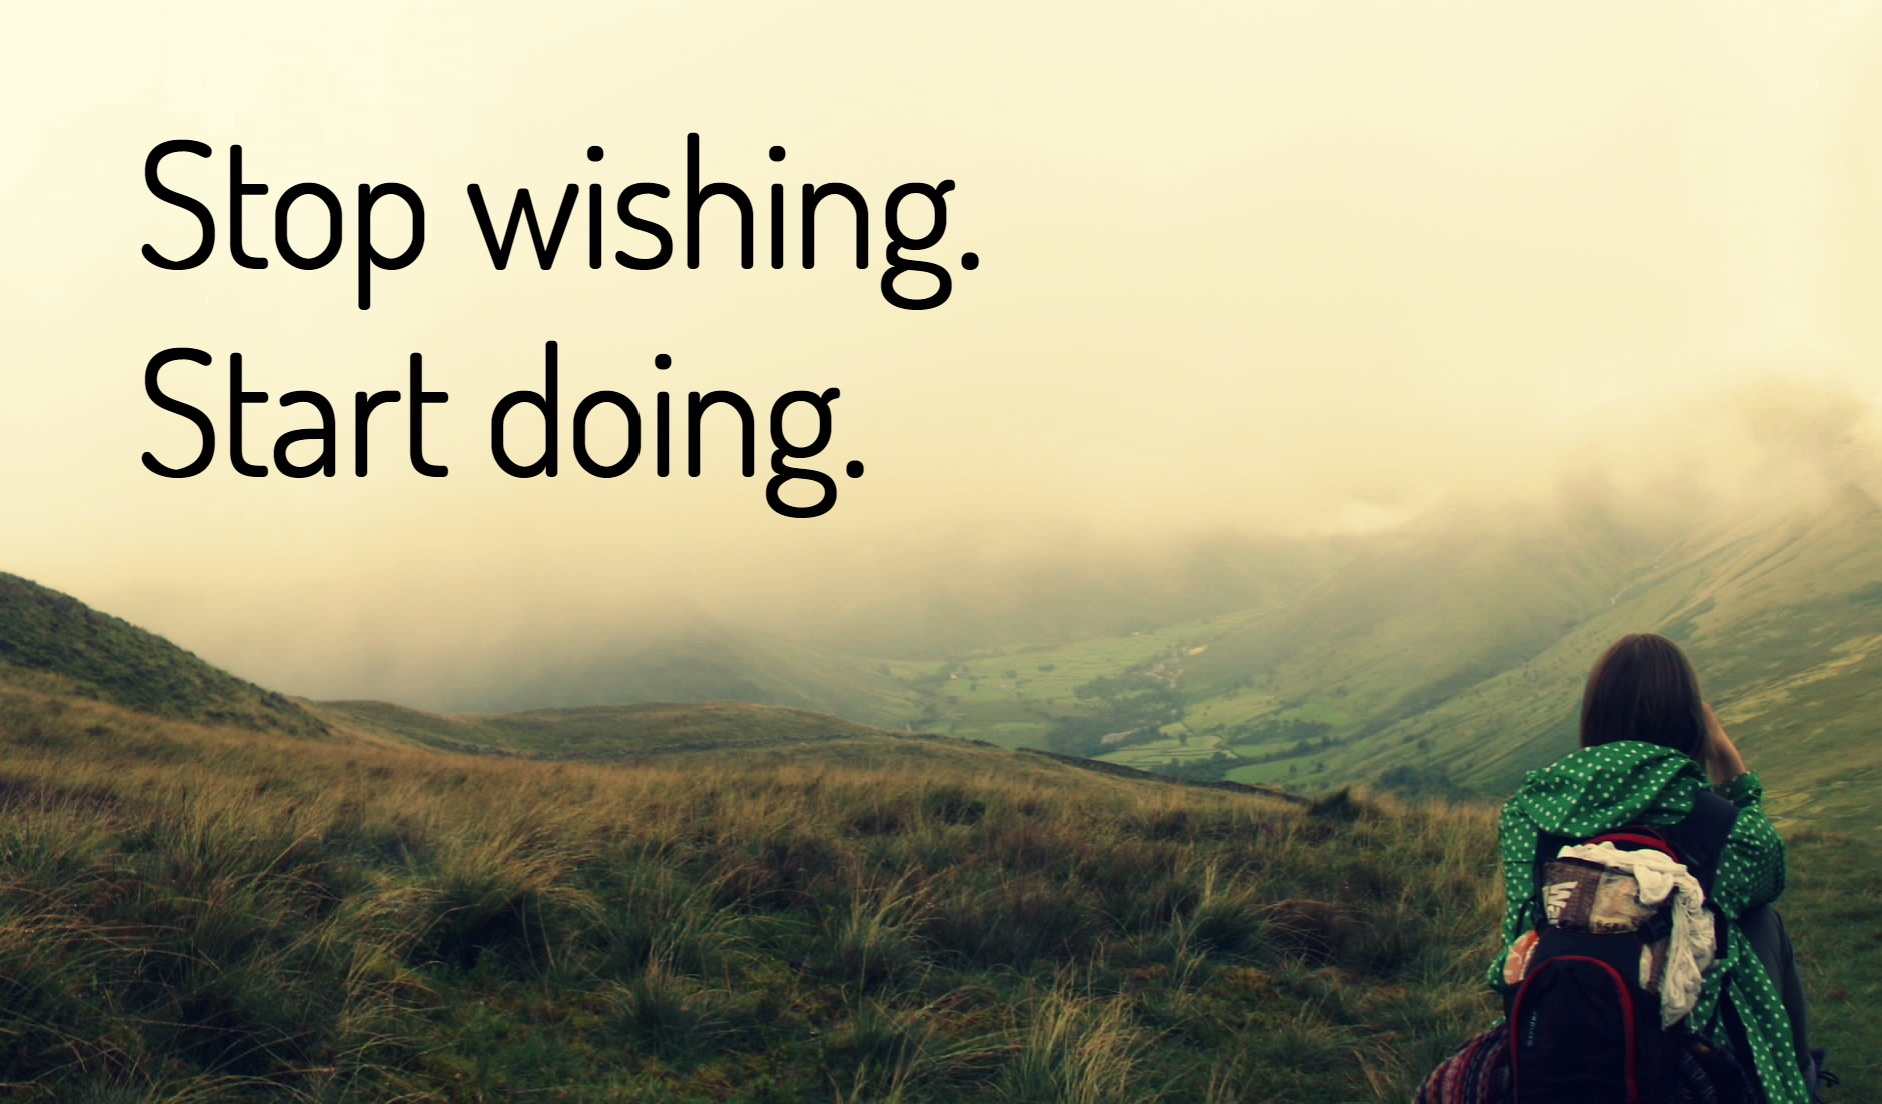 Wishing-Quote-Creative-Countryside